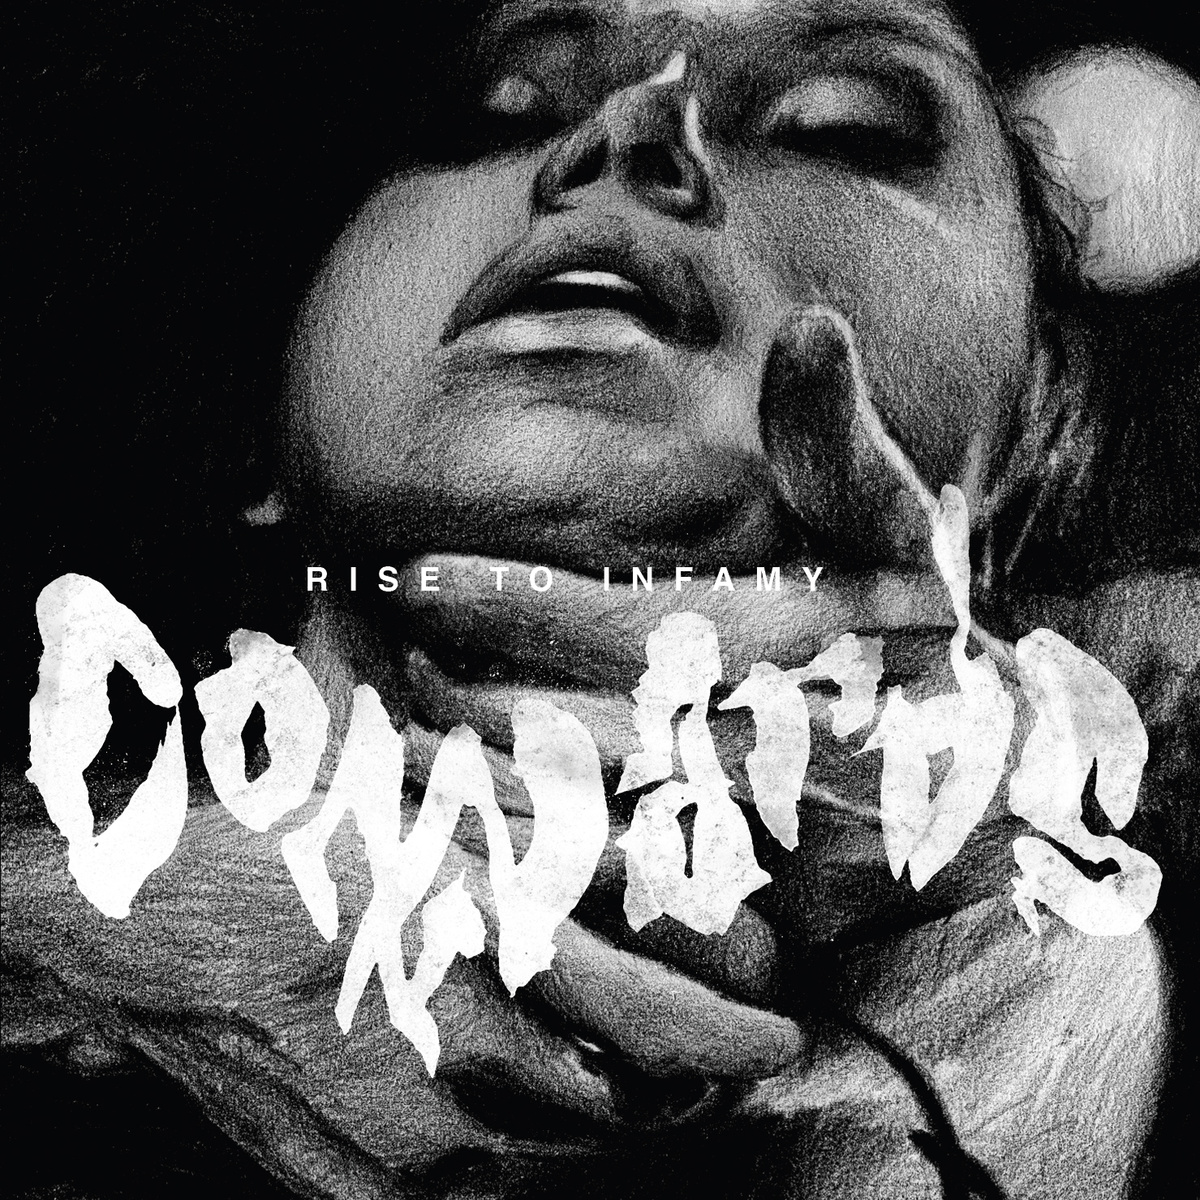 cowards-rise-to-infamy